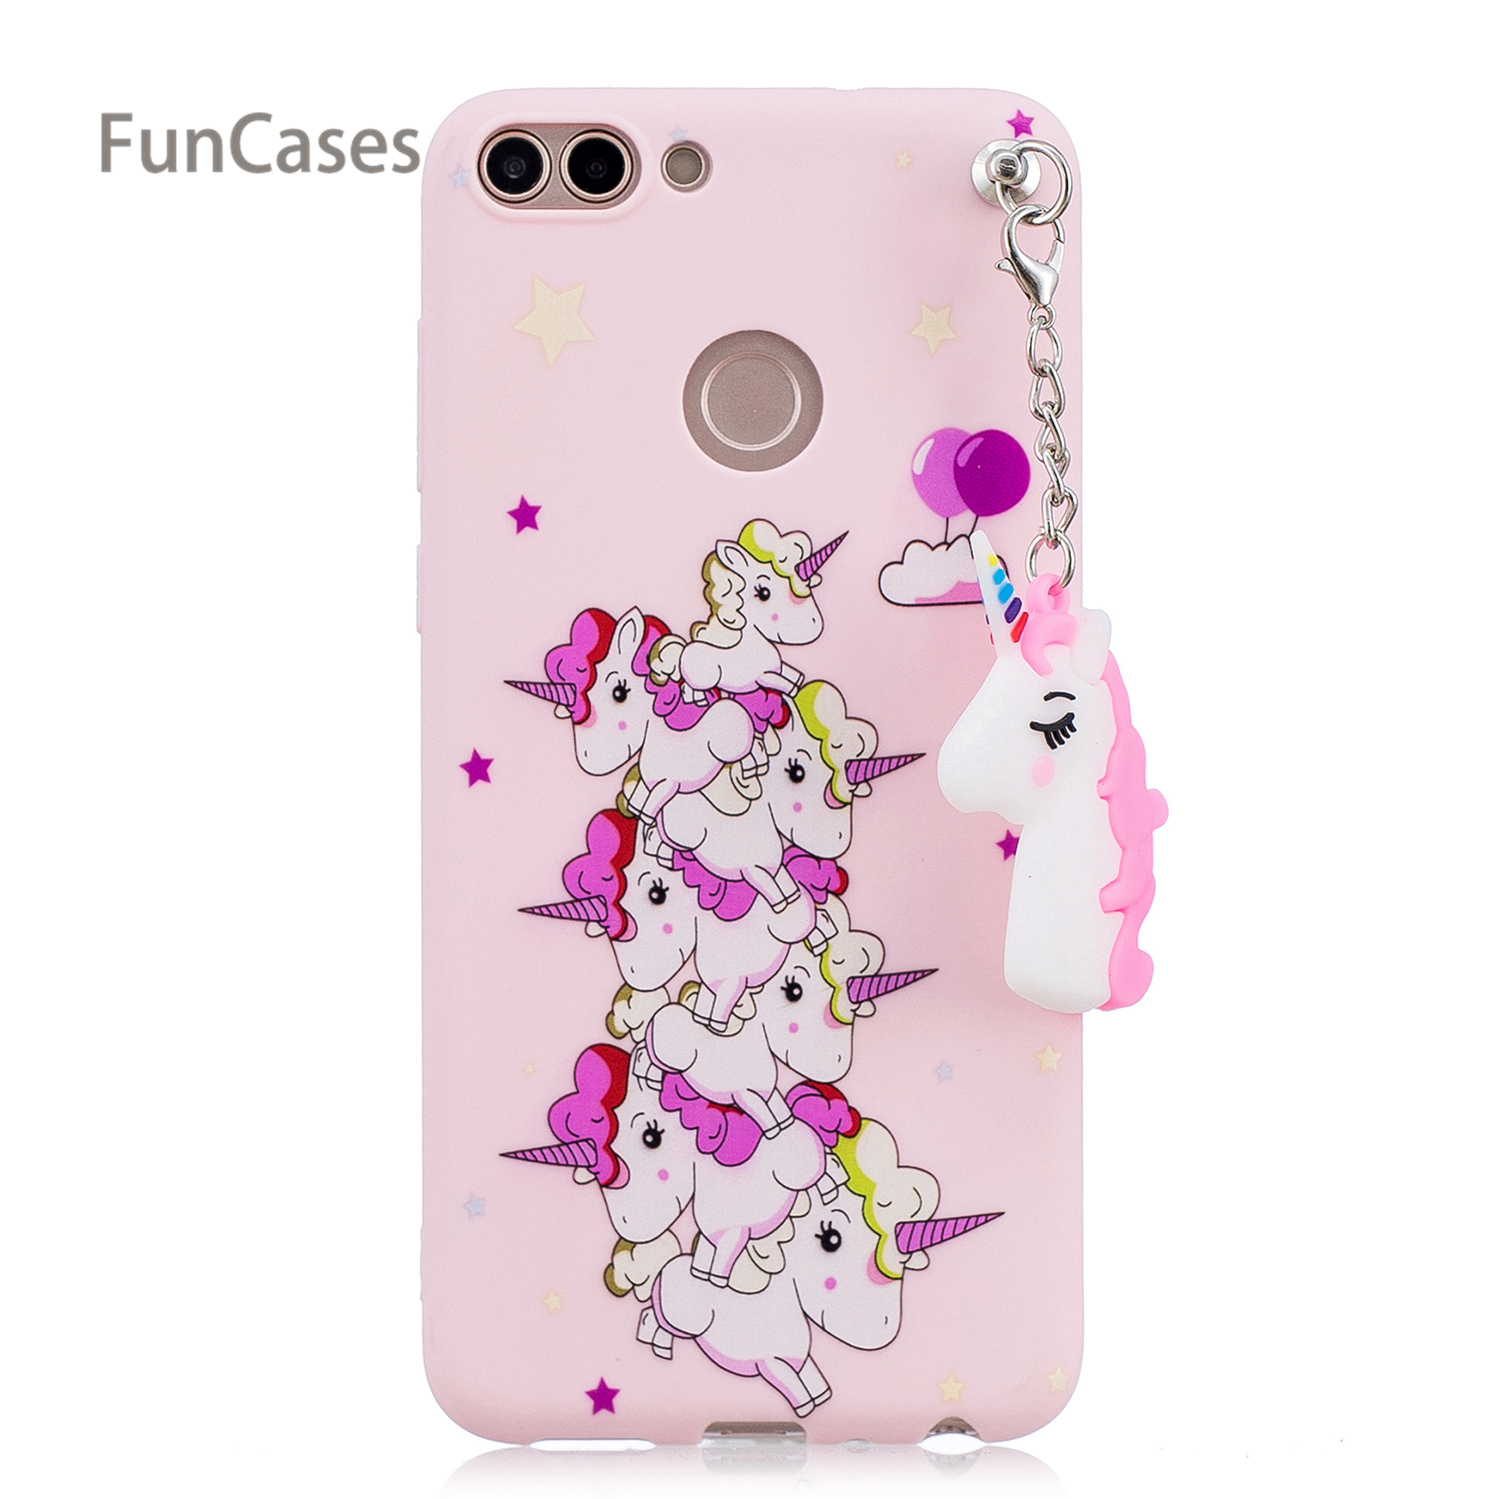 3D Pendant Phone Case sFor Celular Huawei Enjoy 7S Soft TPU Phone Case Accessory Jewelled Phone Case For Huawei Ascend P Smart